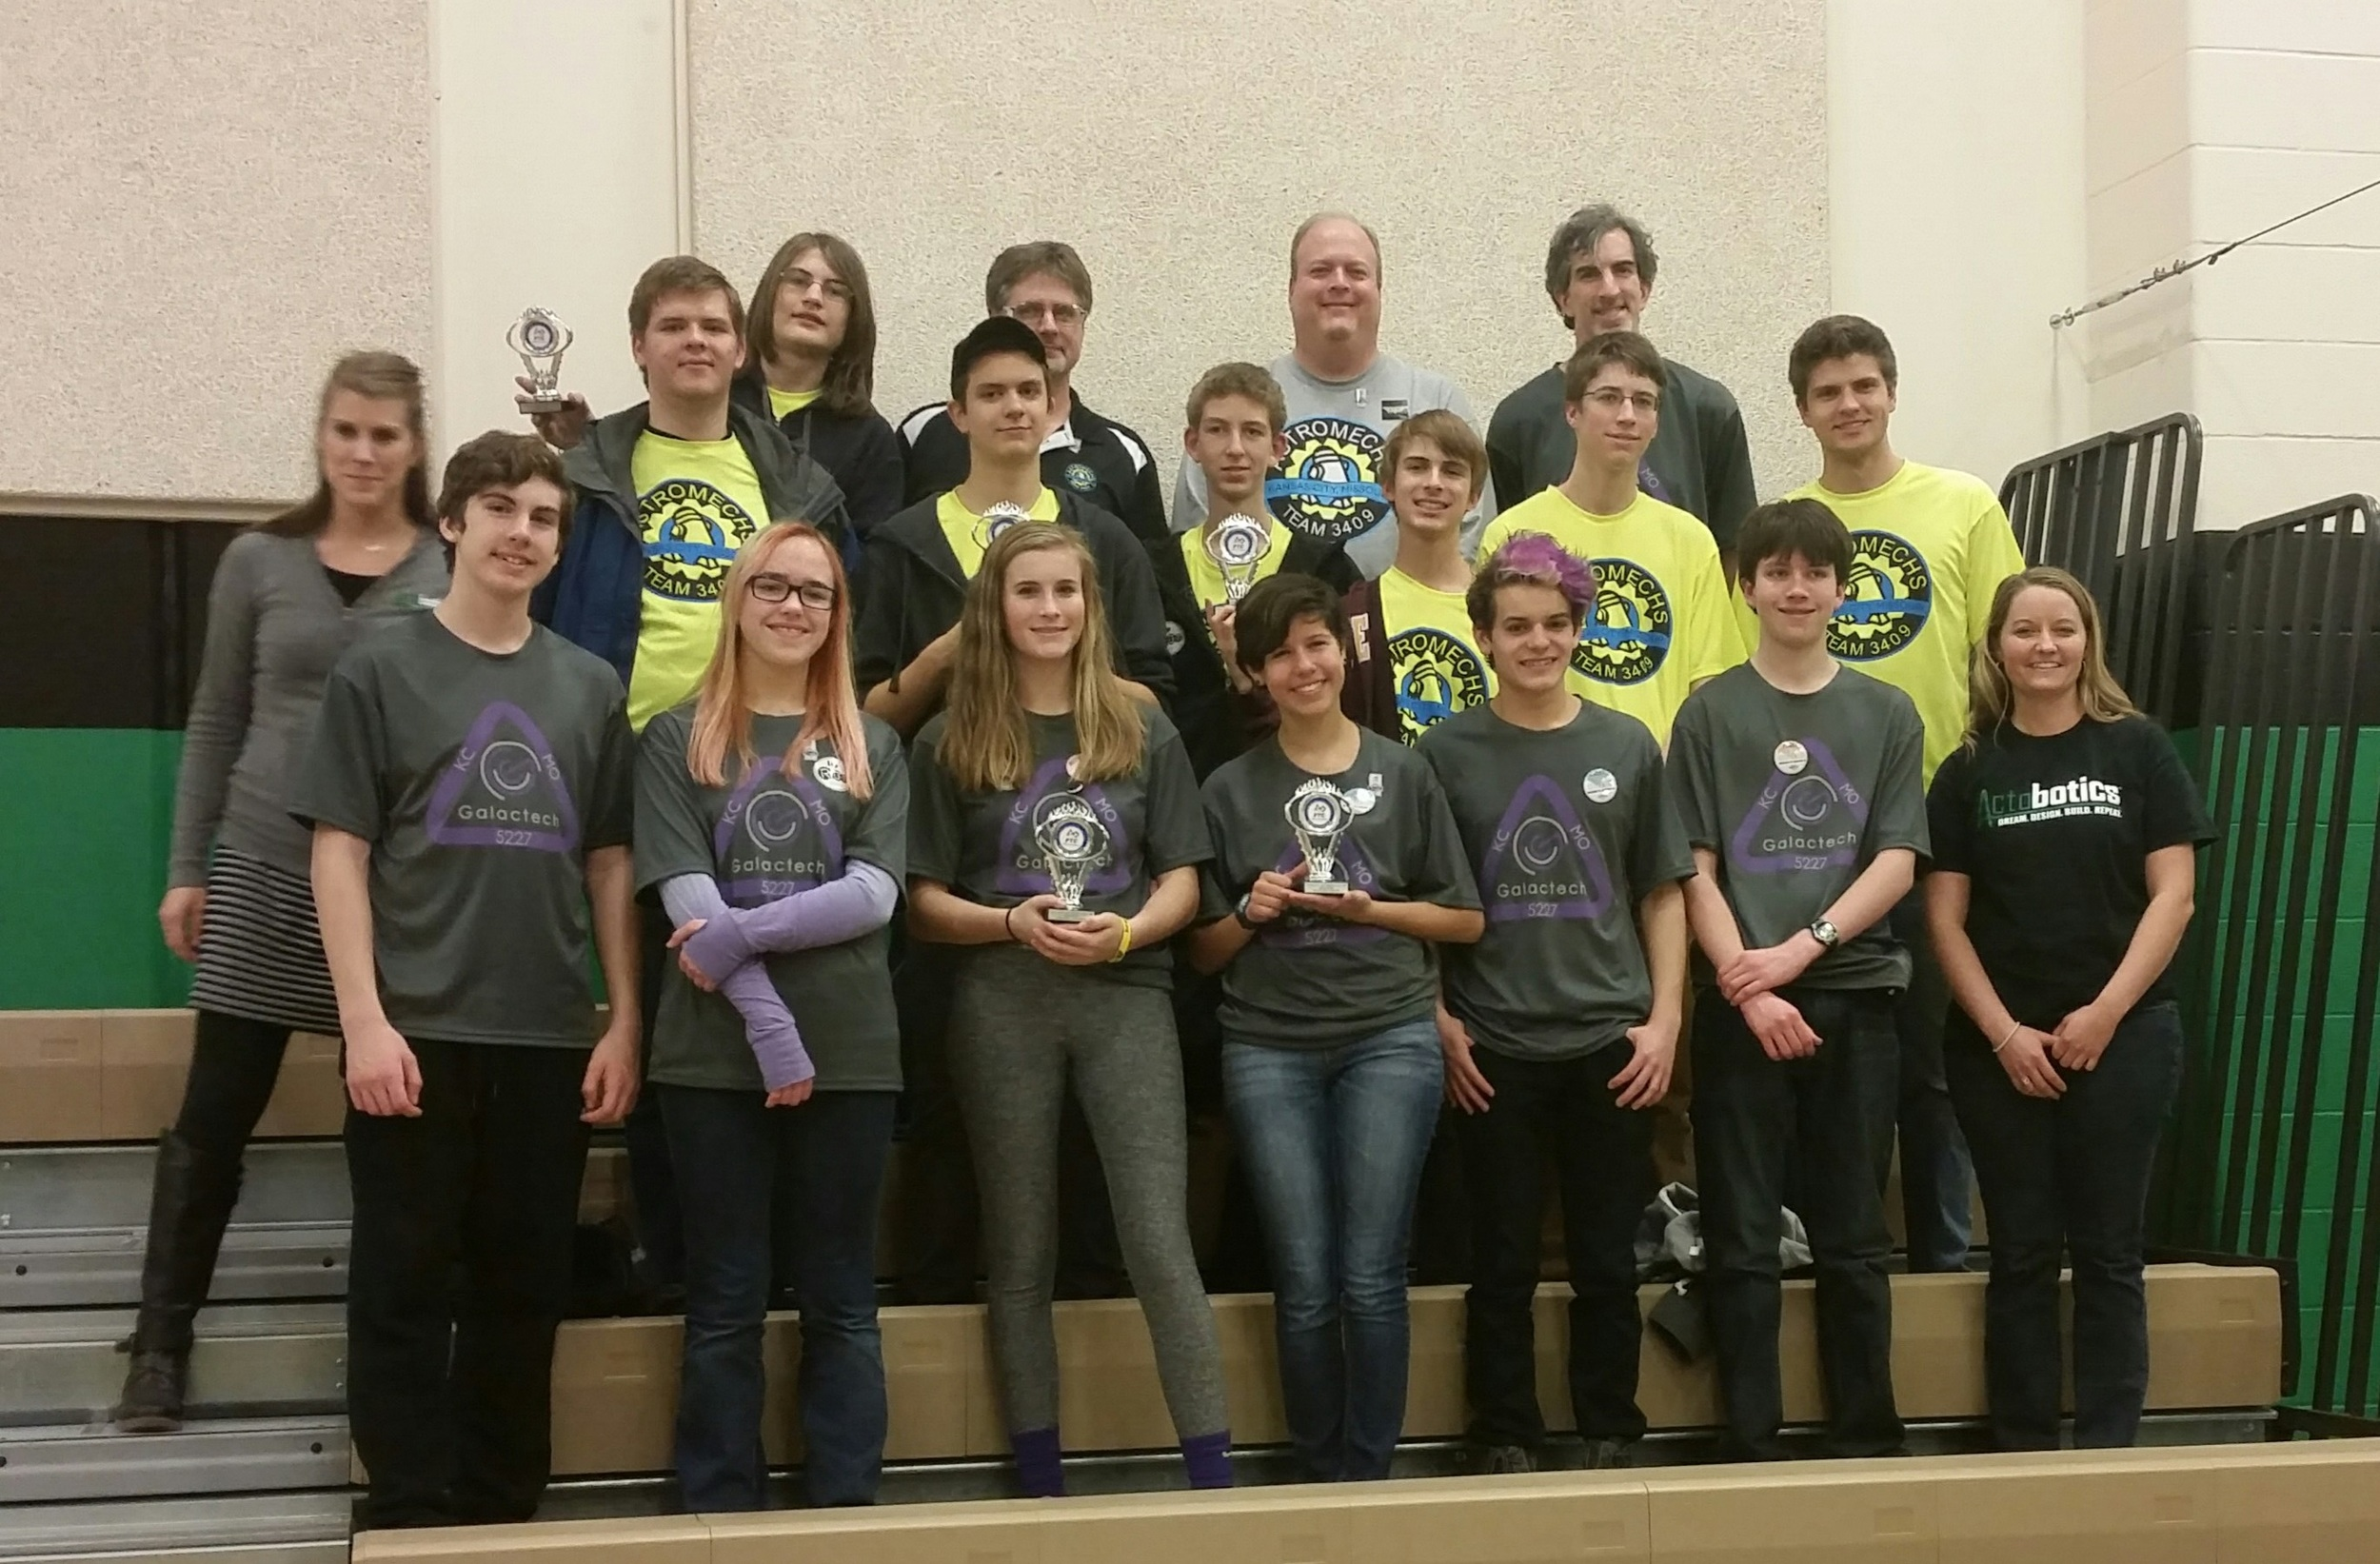 Team-with-Actobotics.jpg